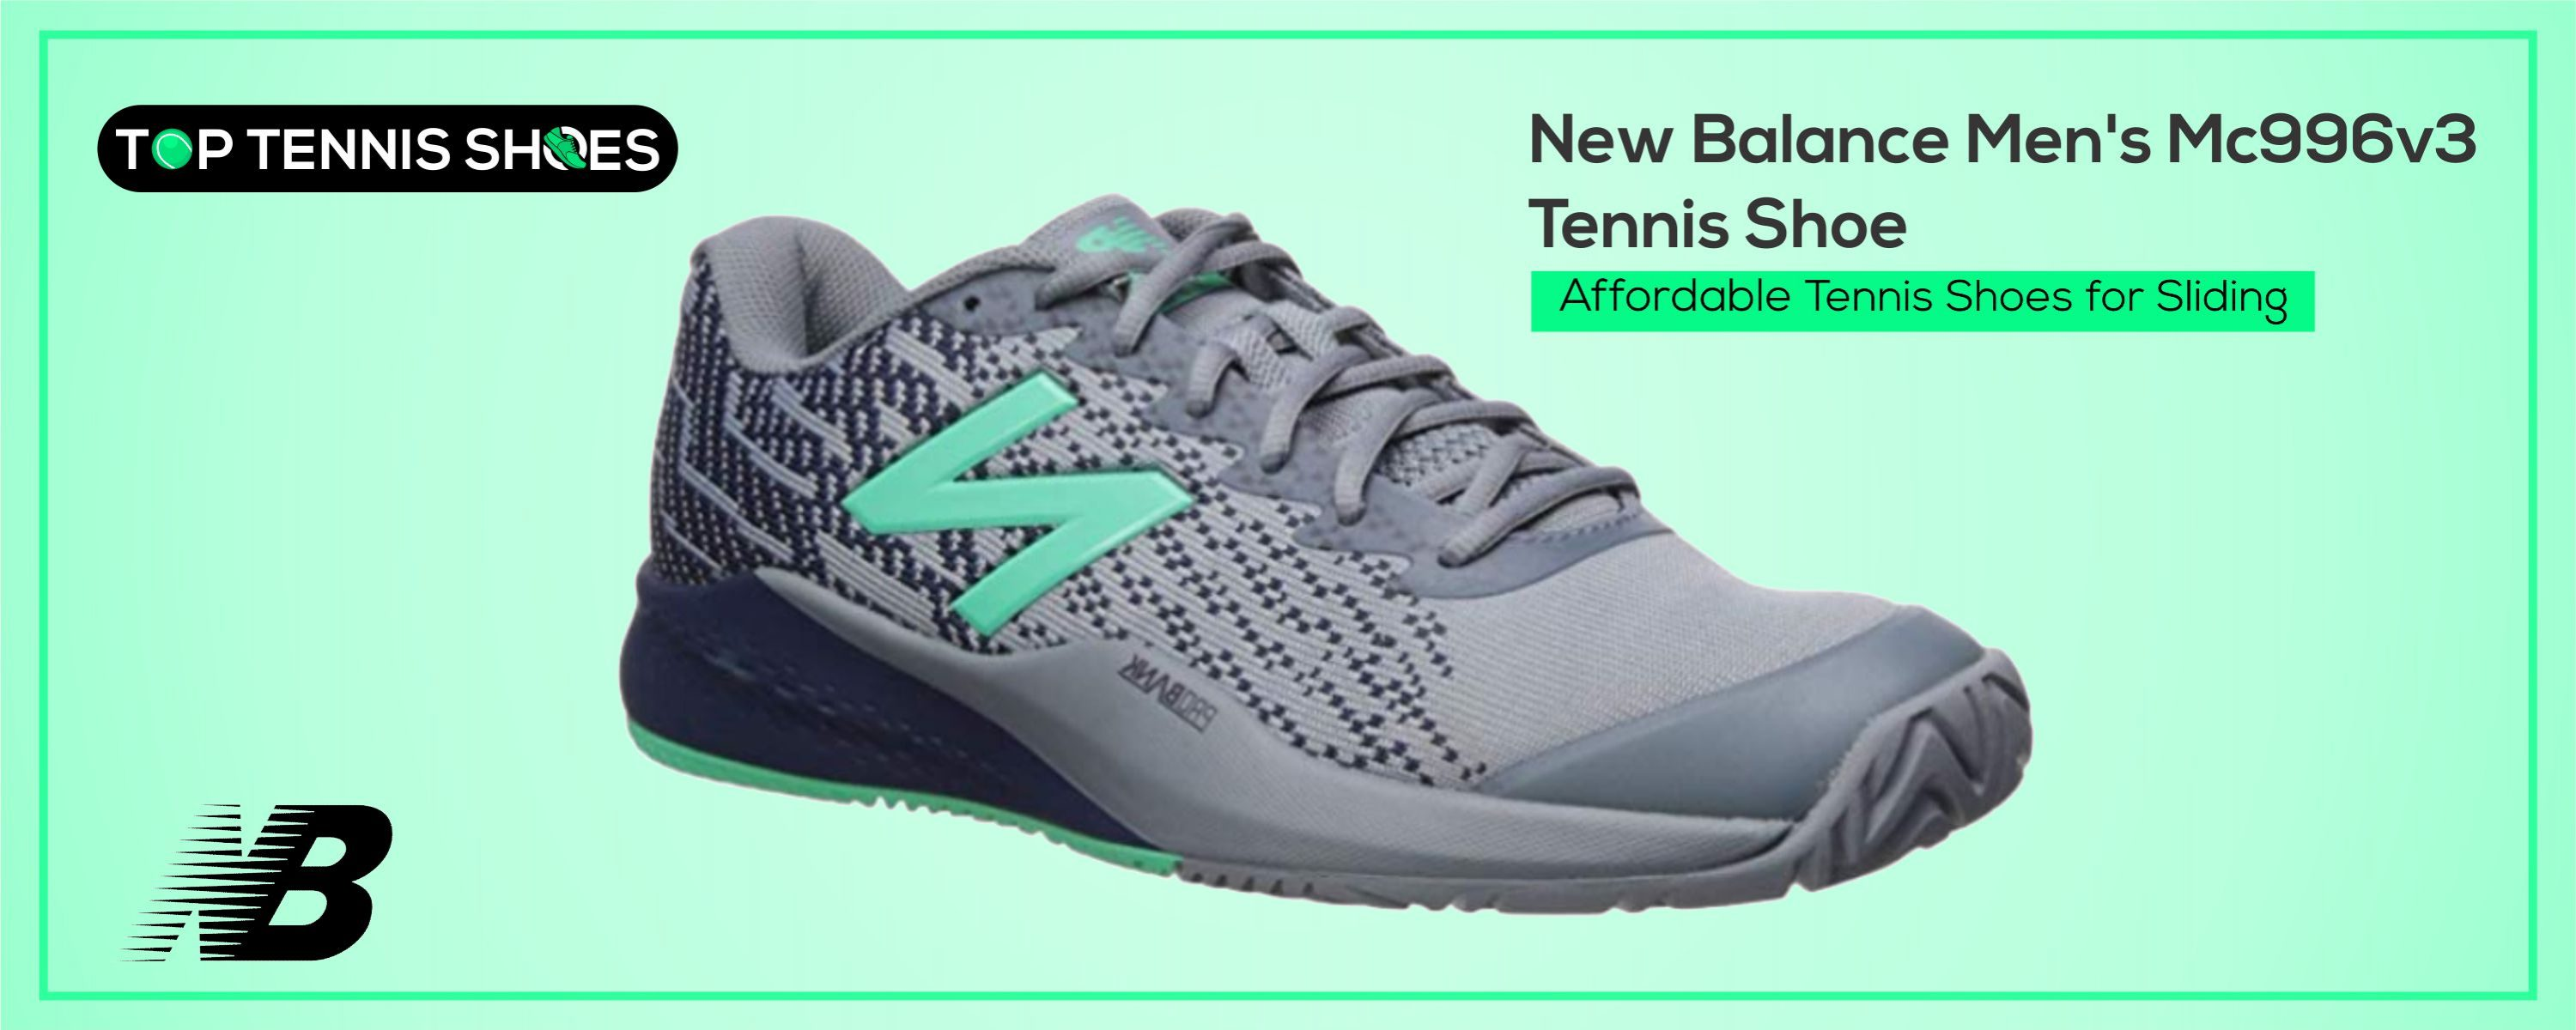 Affordable Tennis Shoes for Sliding